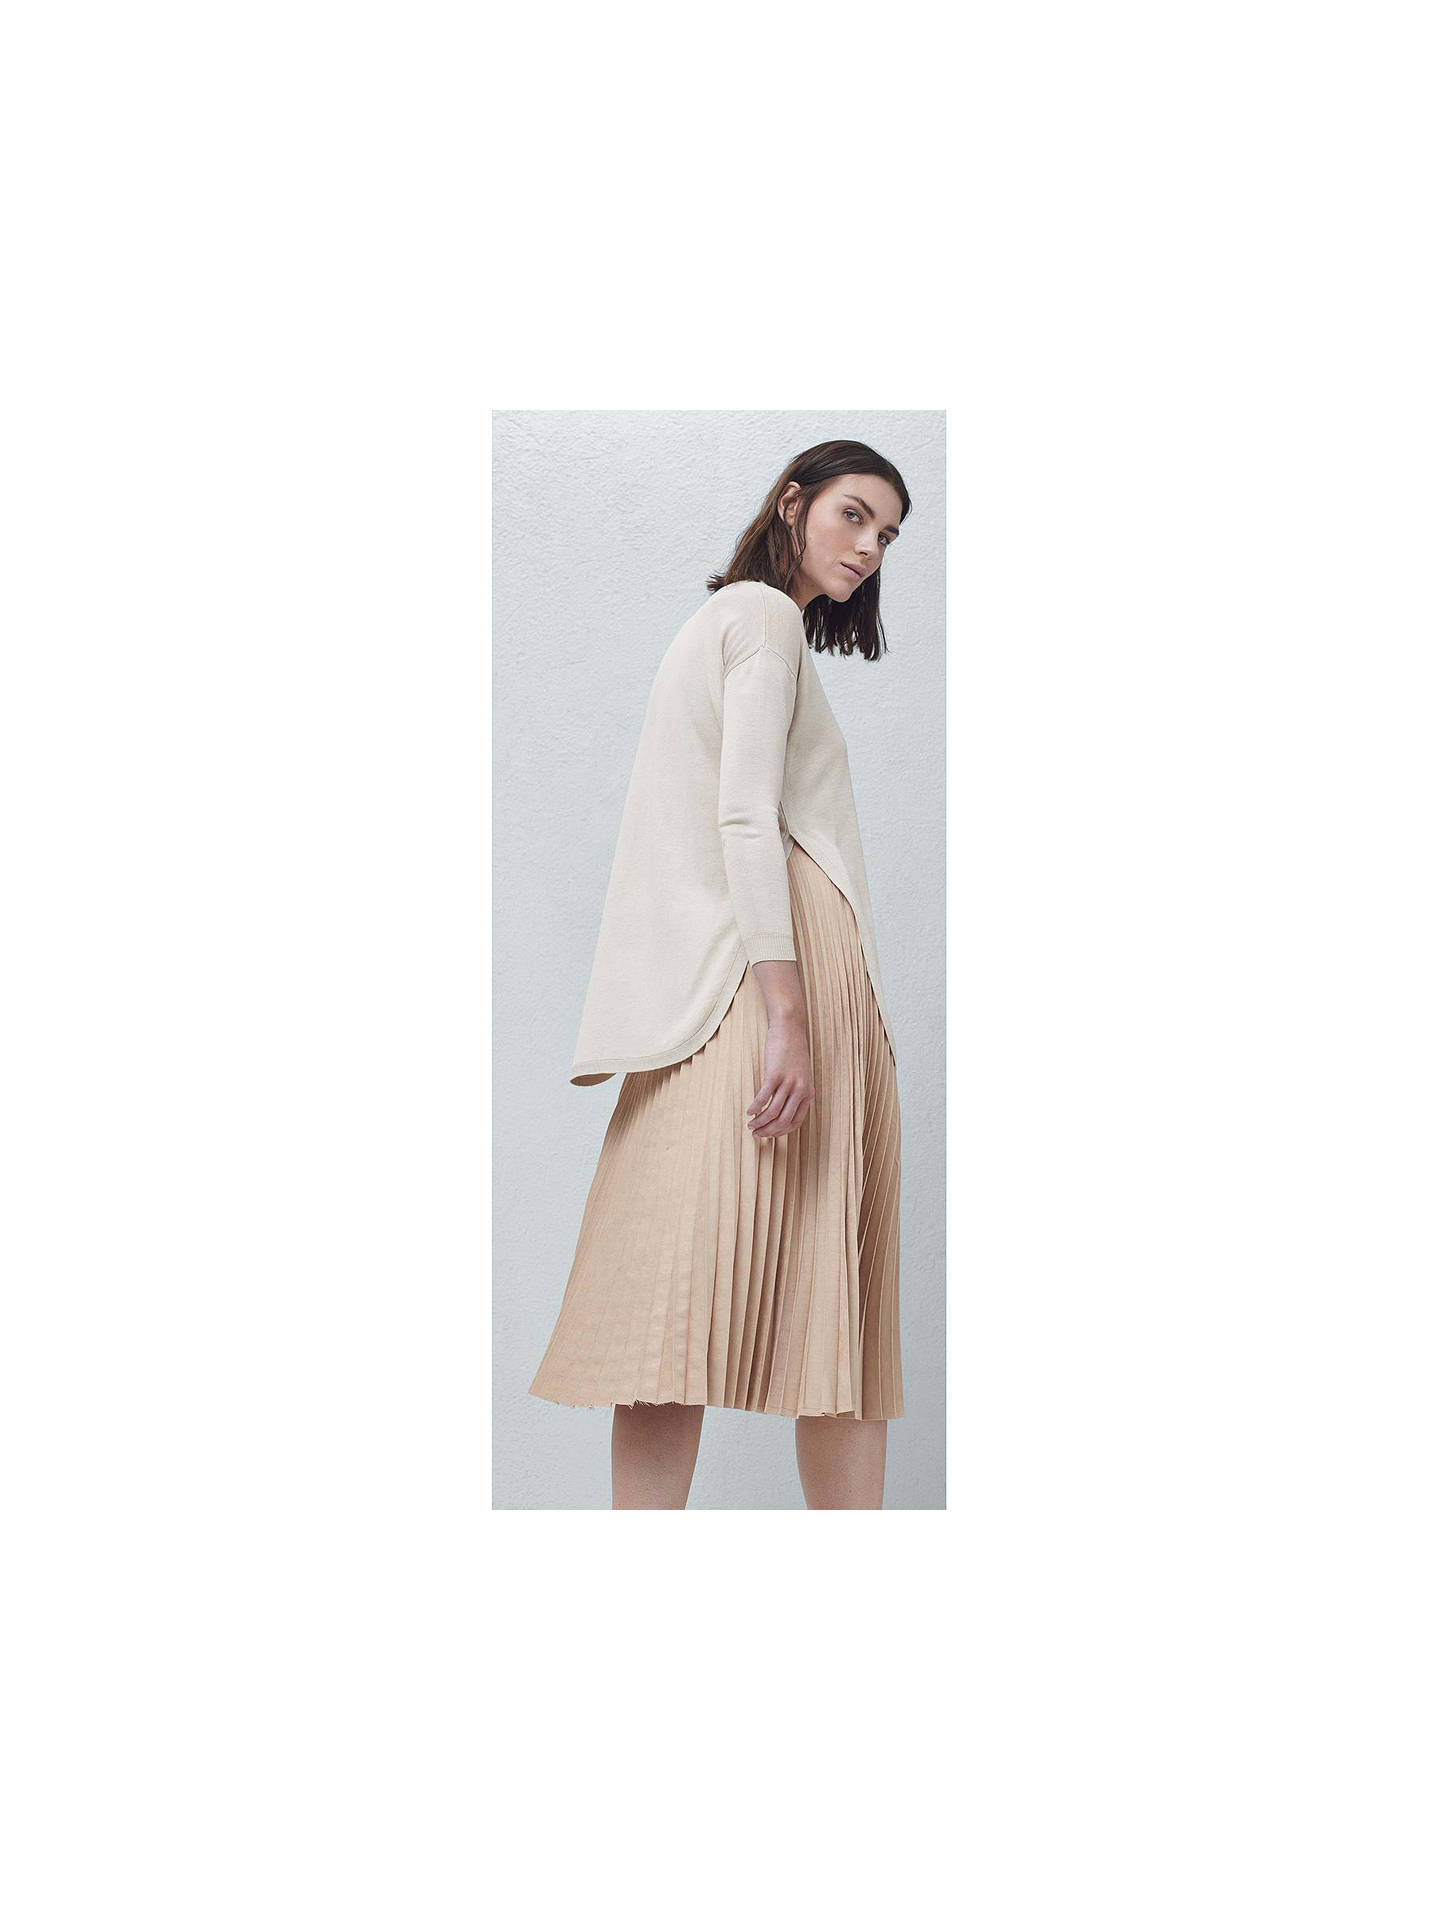 ca7b4415f ... Buy Mango Pleated Midi Skirt, Light Pastel Pink, 6 Online at  johnlewis.com